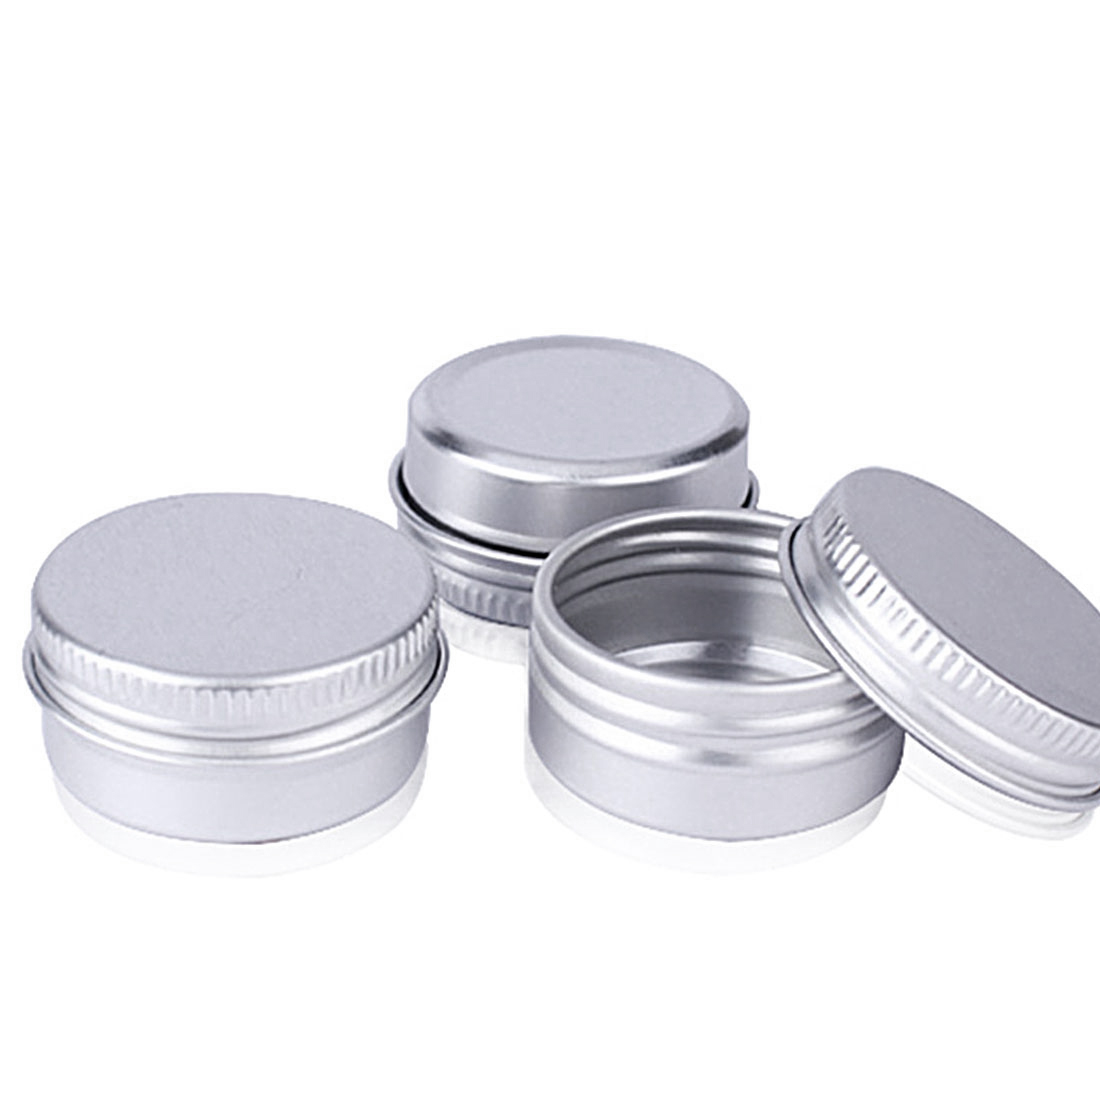 Empty Aluminum Cream Jar Tin Cosmetic Lip Balm Containers Nail Derocation Crafts Pot Bottle Screw Thread